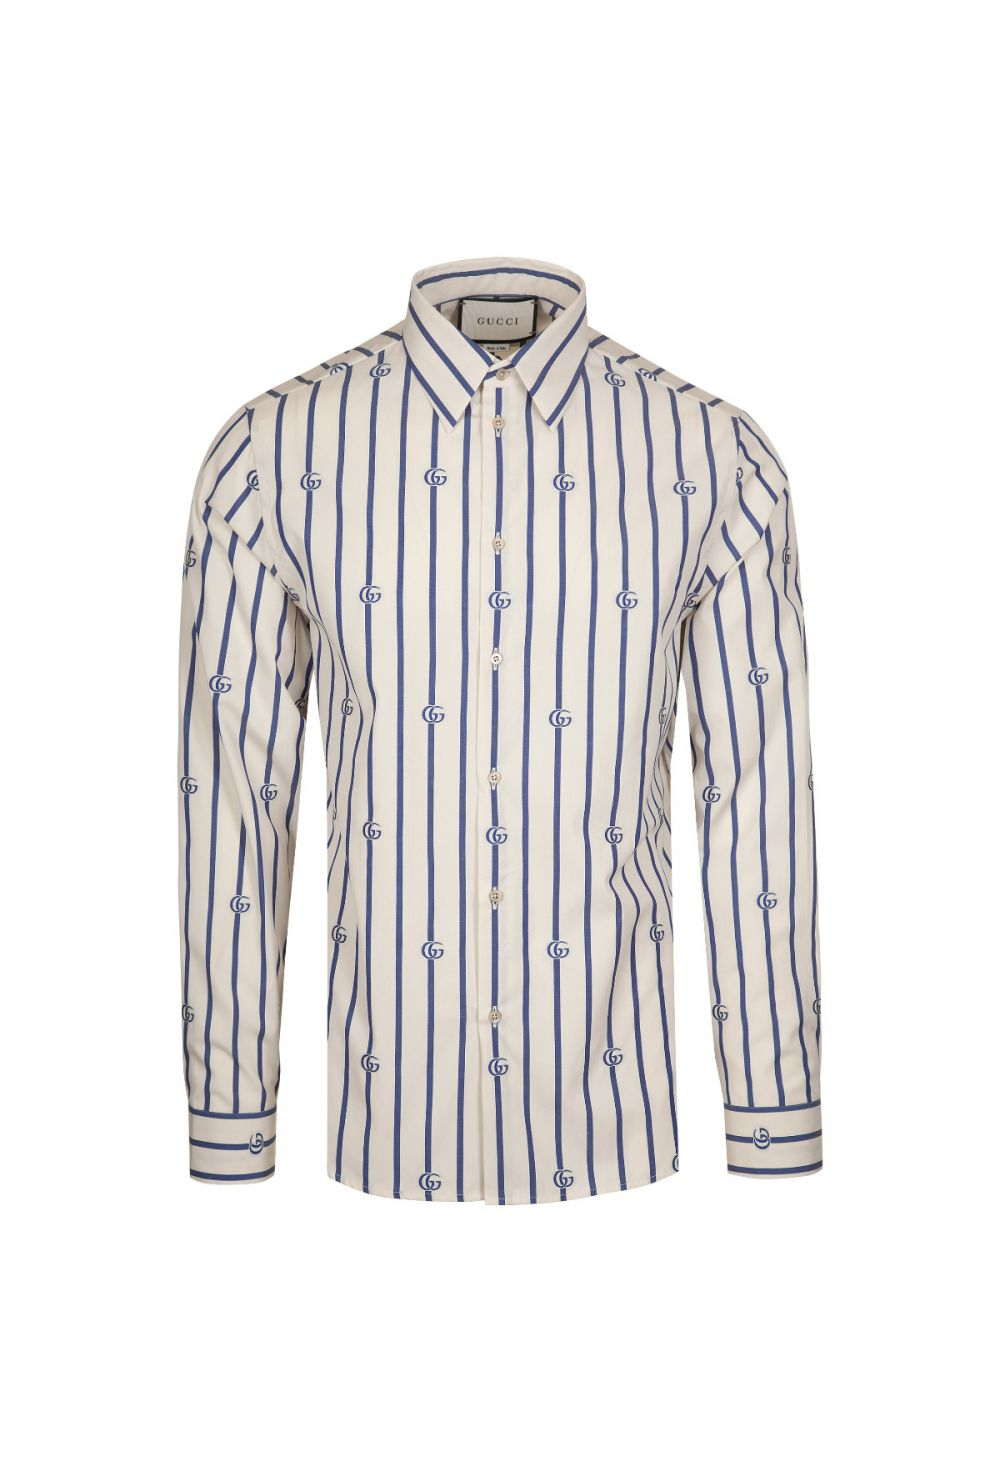 Gucci GG Striped Cotton Shirt